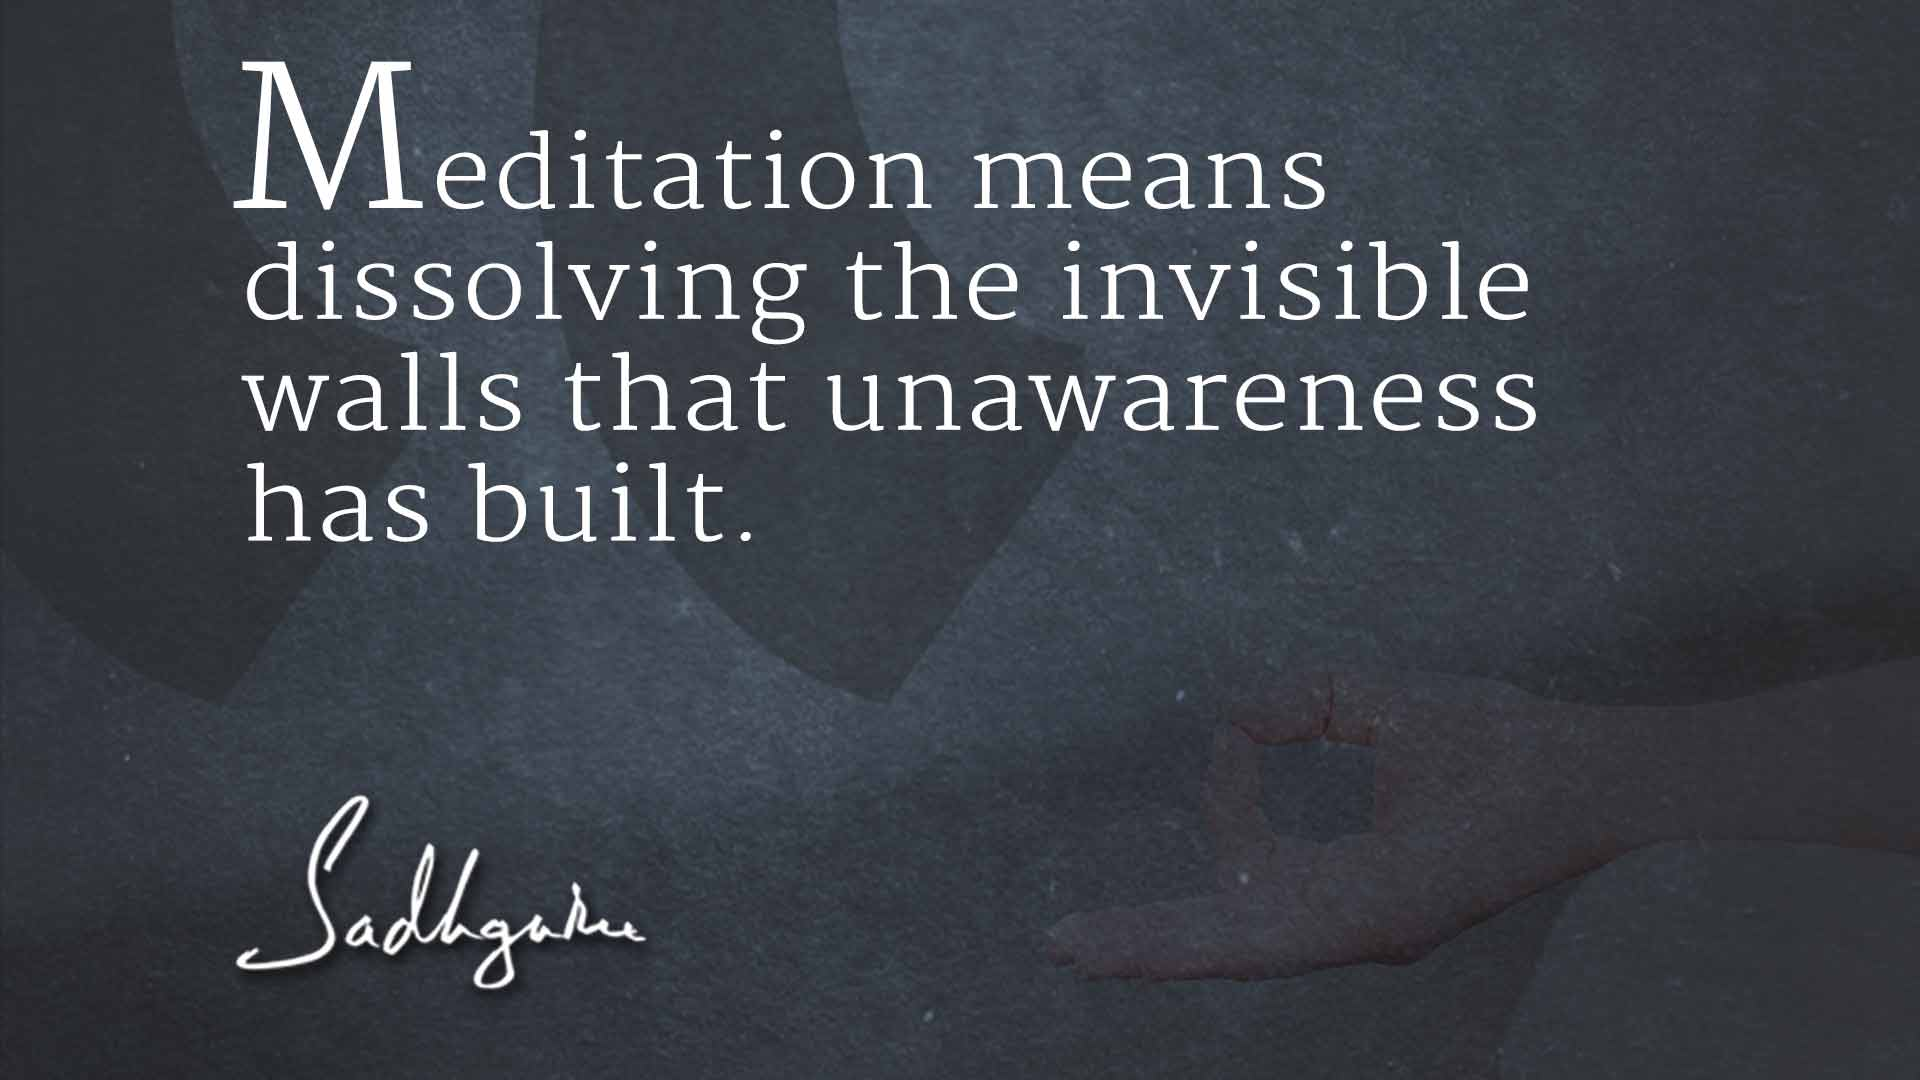 Transform yourselves with everyday meditation